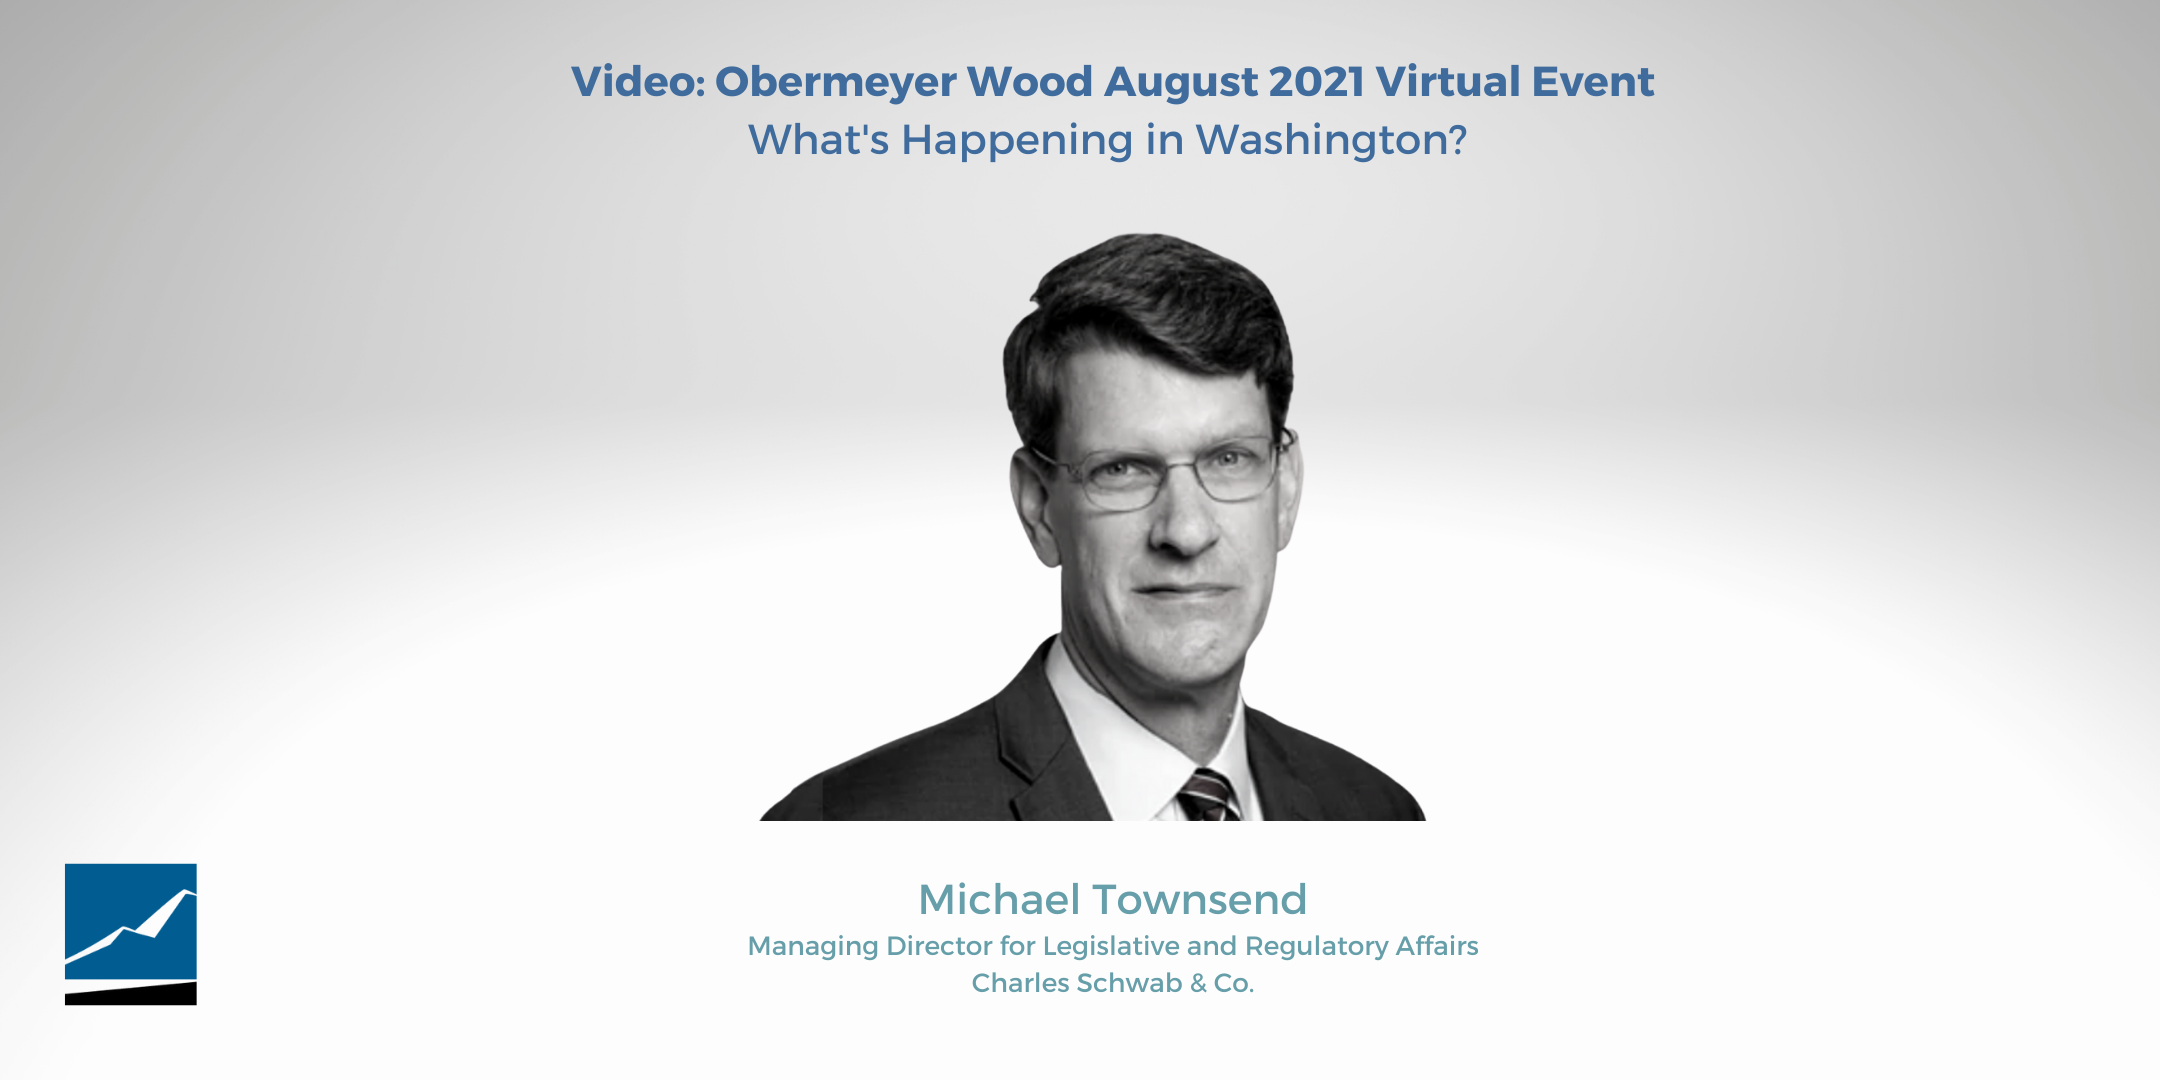 Video: Obermeyer Wood Virtual Event: What's Happening in Washington?  Thumbnail